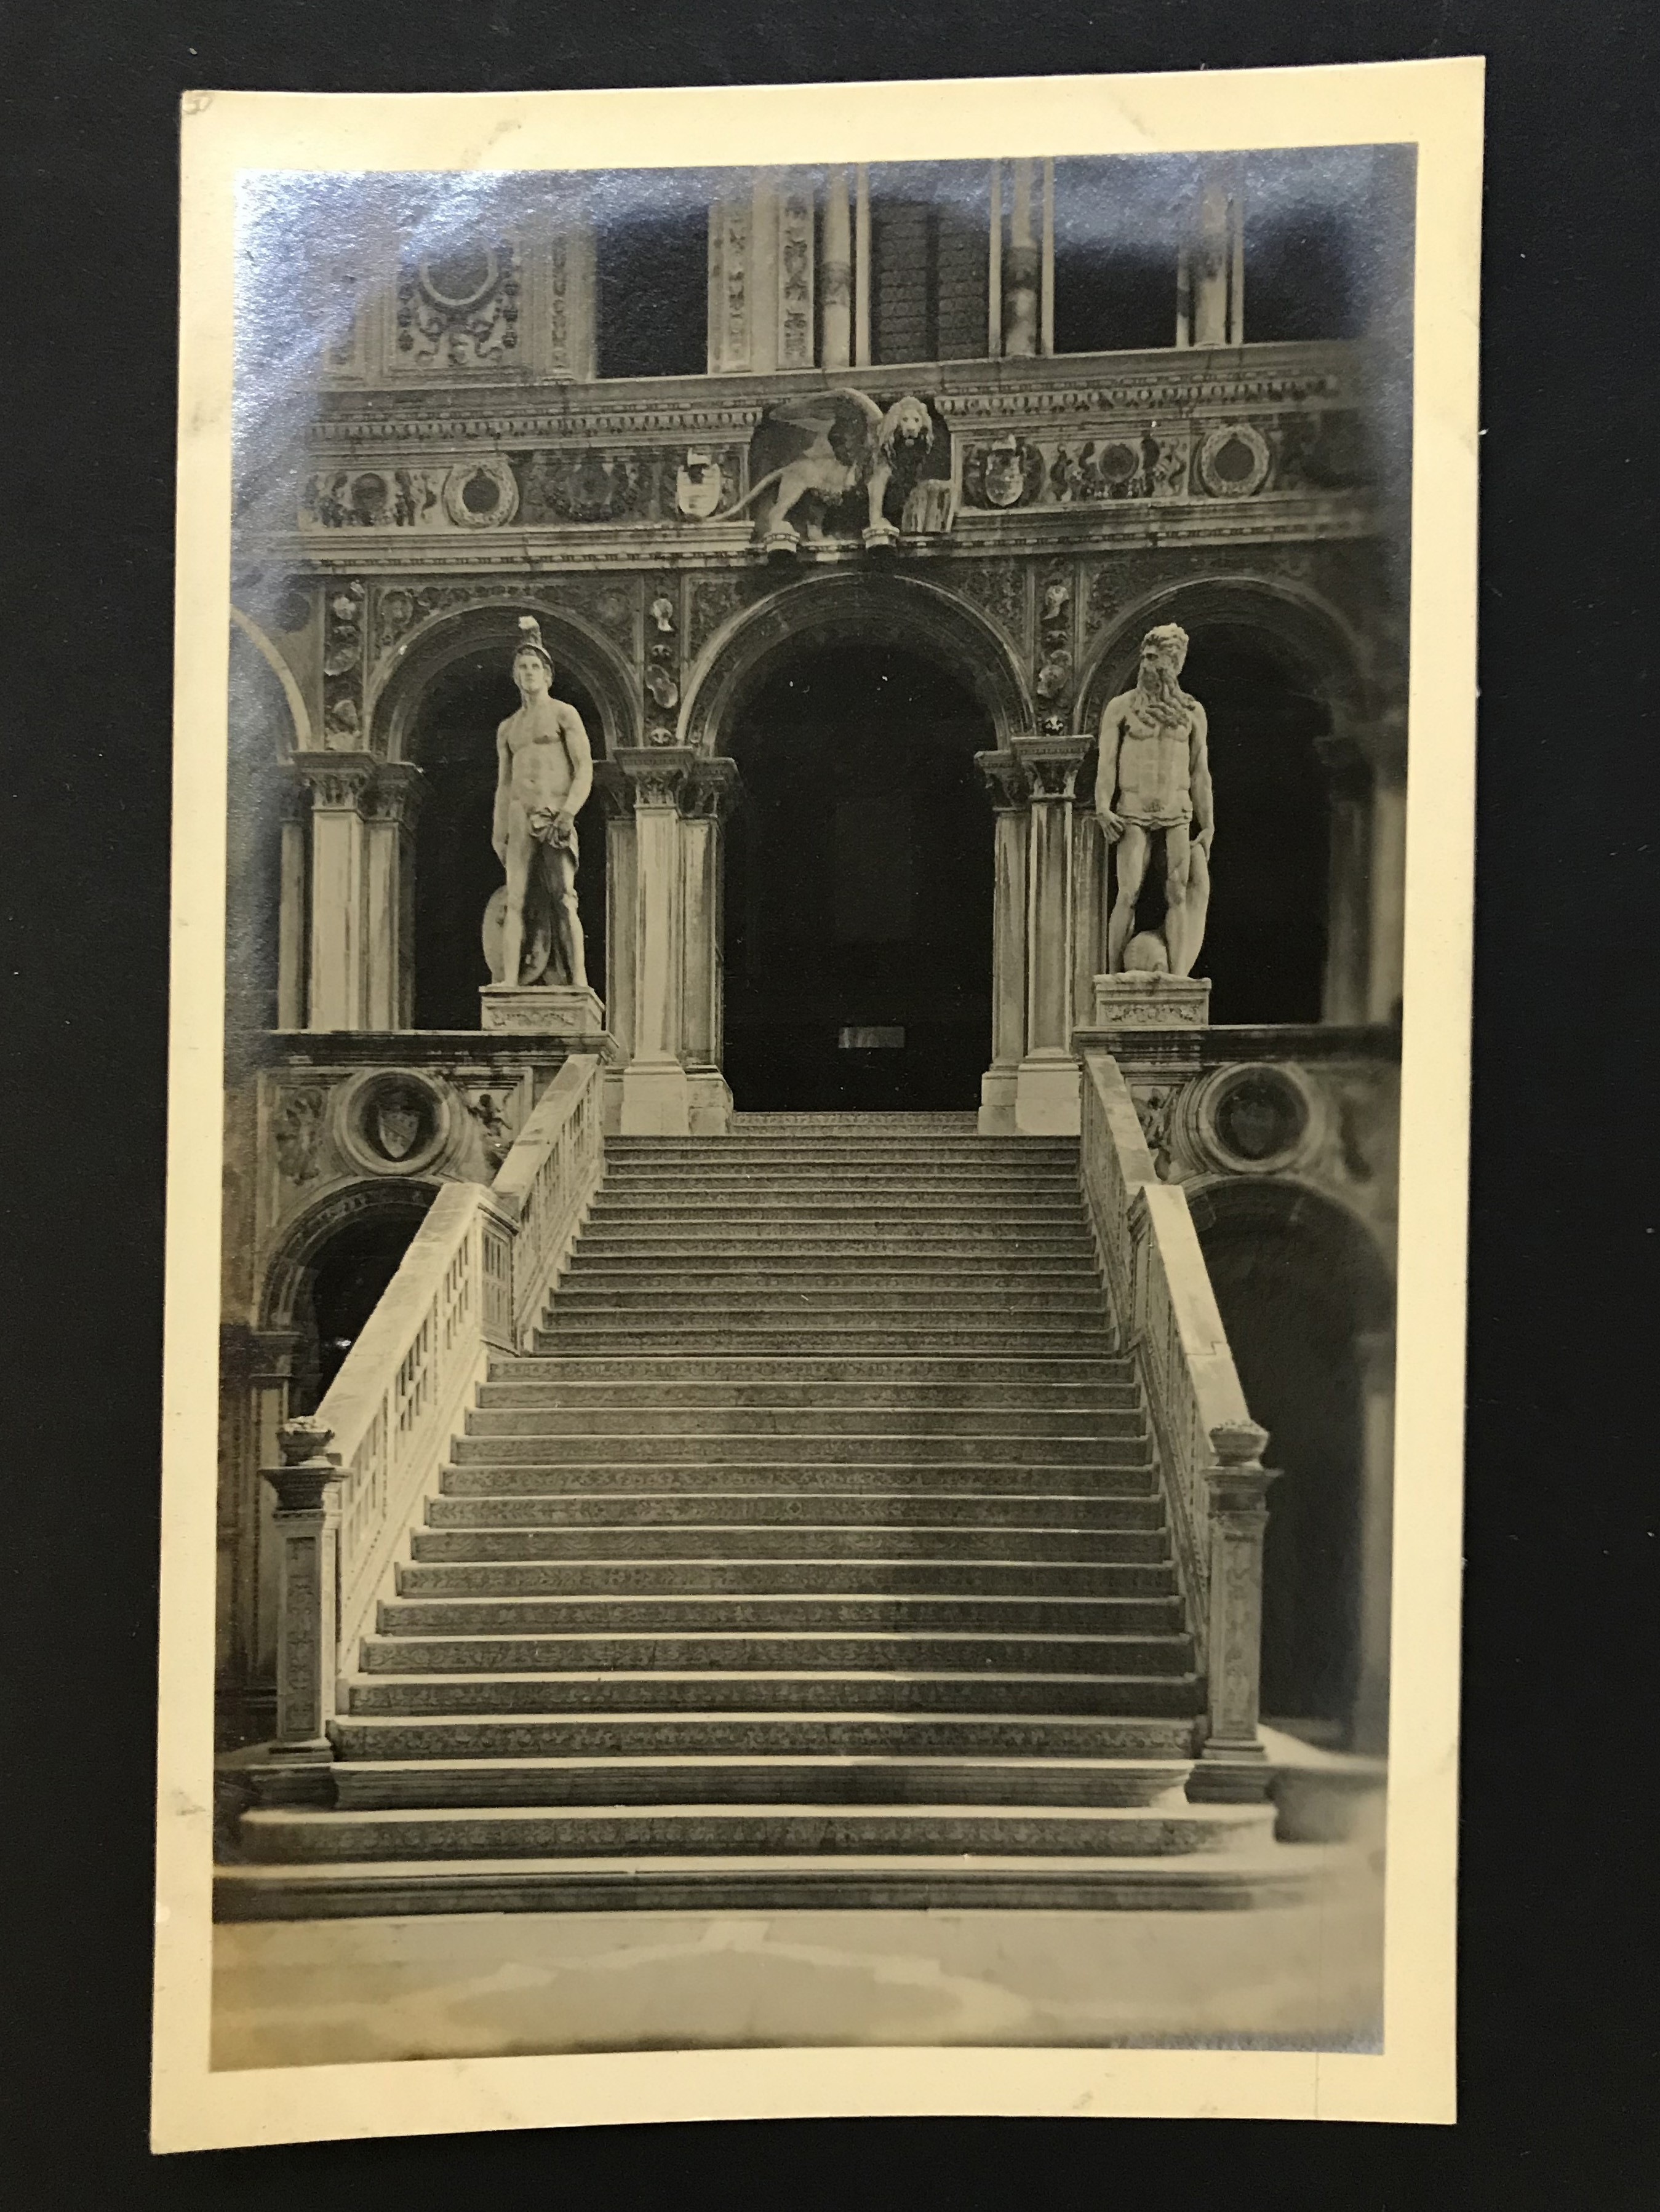 SELECTION OF VENICE RELATED POSTCARDS - Image 26 of 53